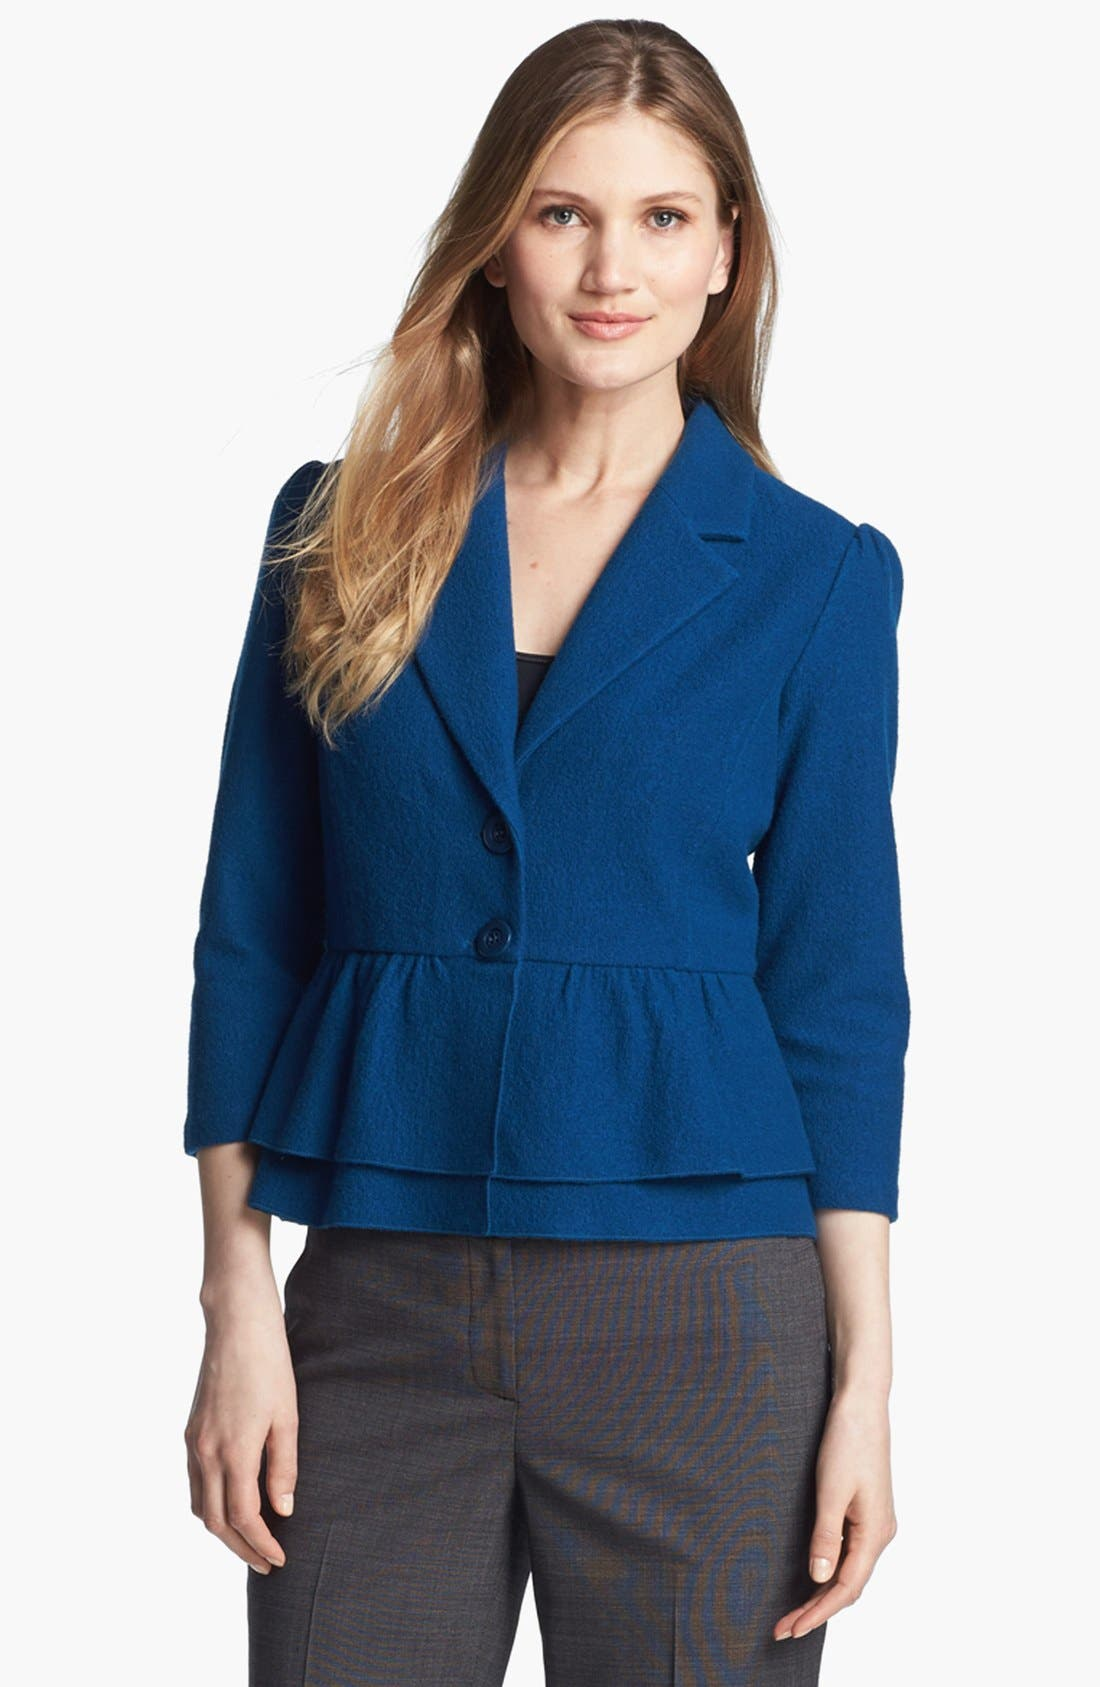 Alternate Image 1 Selected - Classiques Entier® Boiled Wool Peplum Sweater Jacket